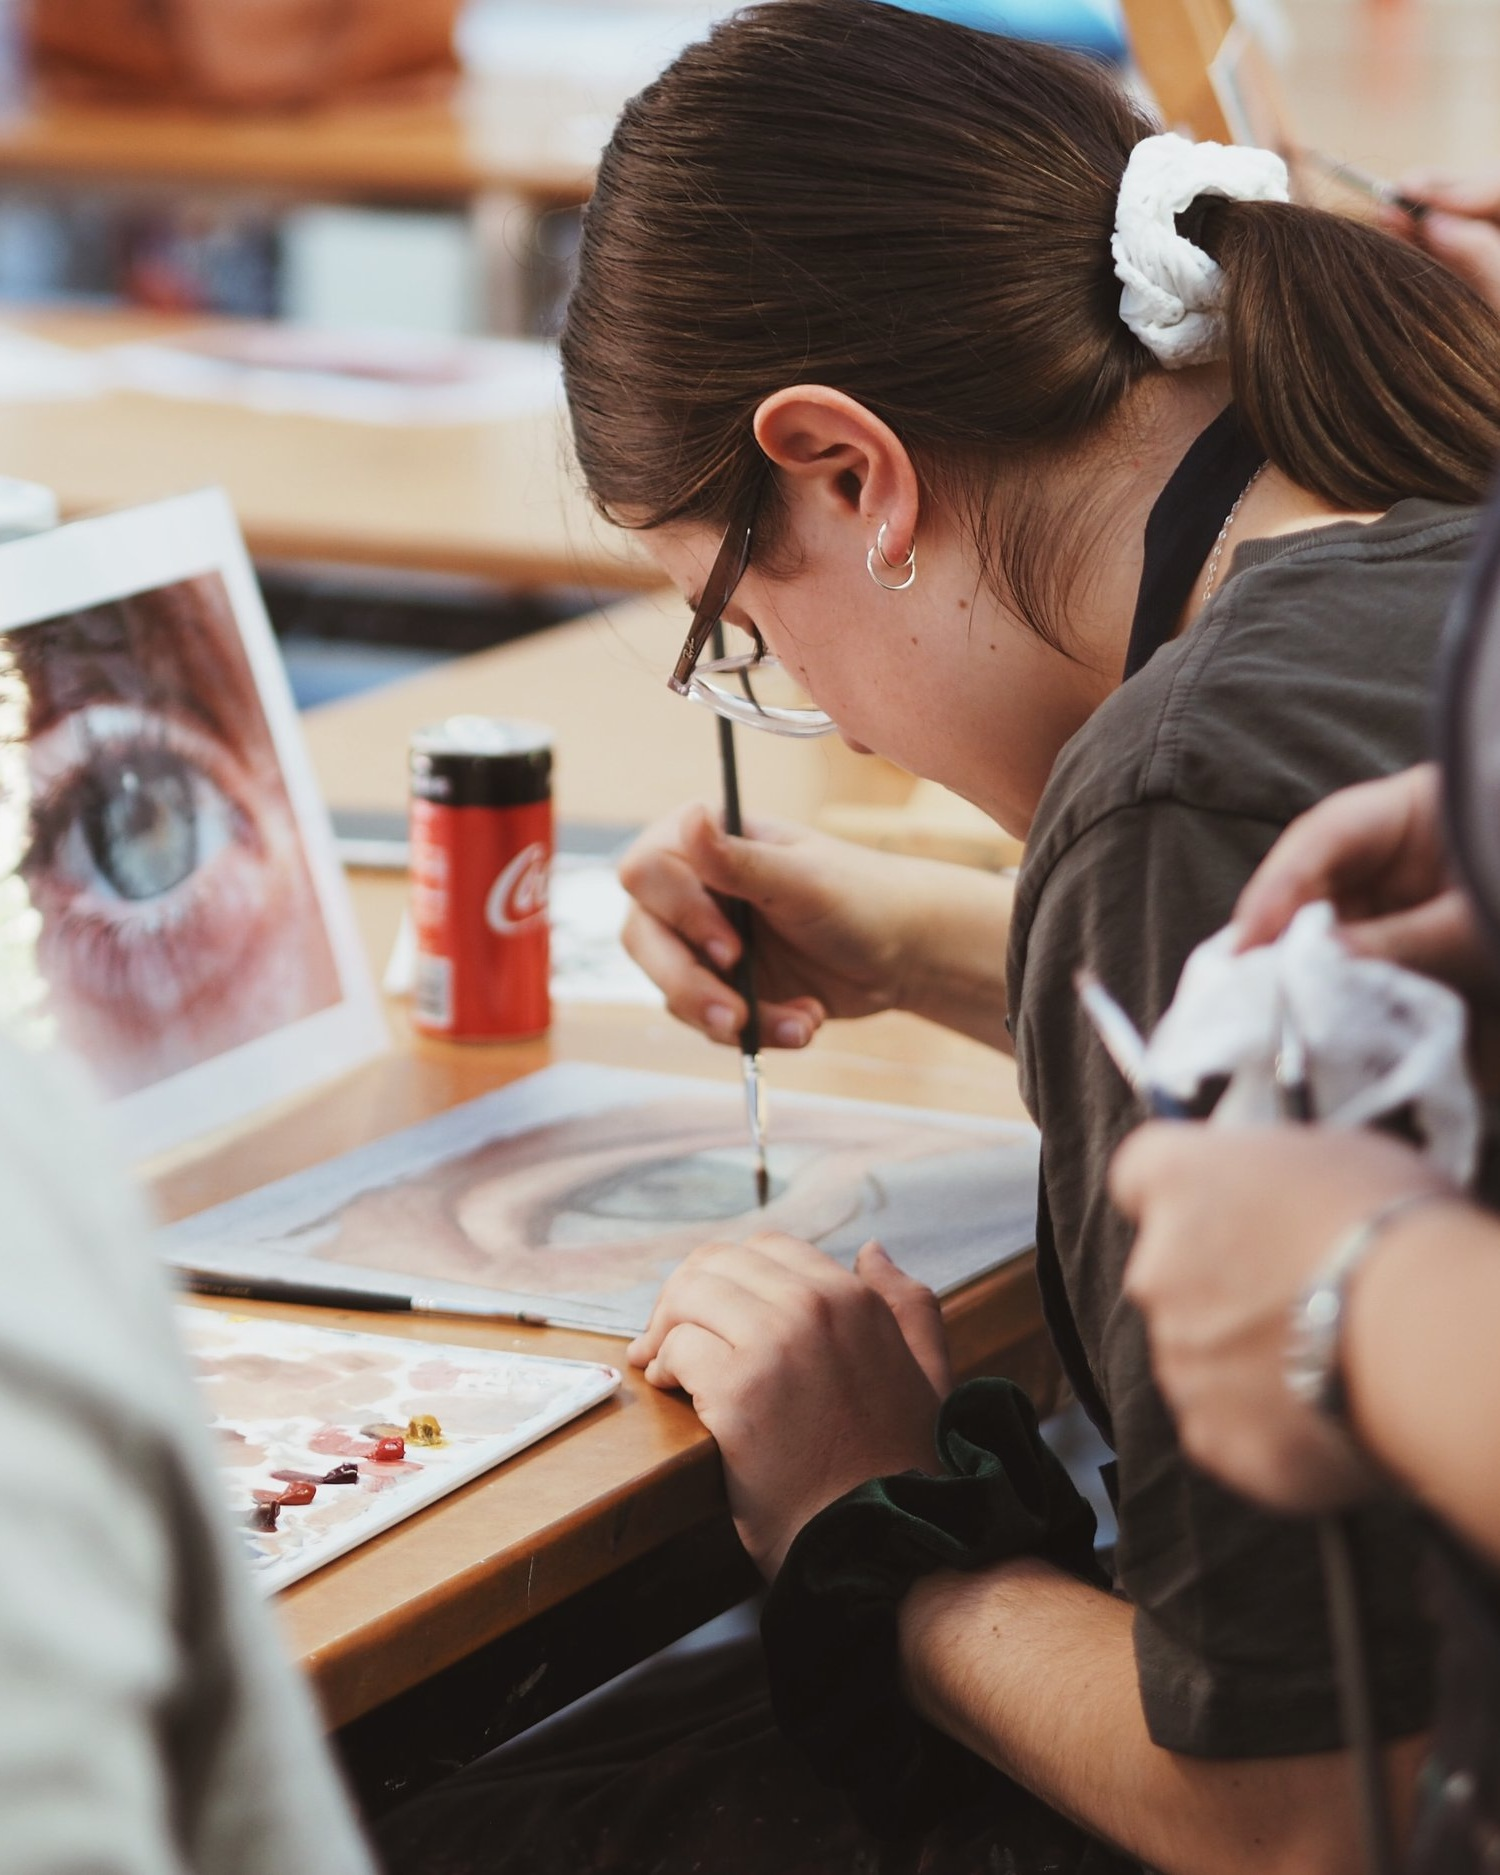 Art incursions - Bring me to your school! I teach a variety of Highschool Art Incursions ranging from:• Pencil drawing and photo referencing• Charcoal drawing from life• Oil painting value, temperature & skin toneLet's join forces to better and equip the emerging artists of our world together!